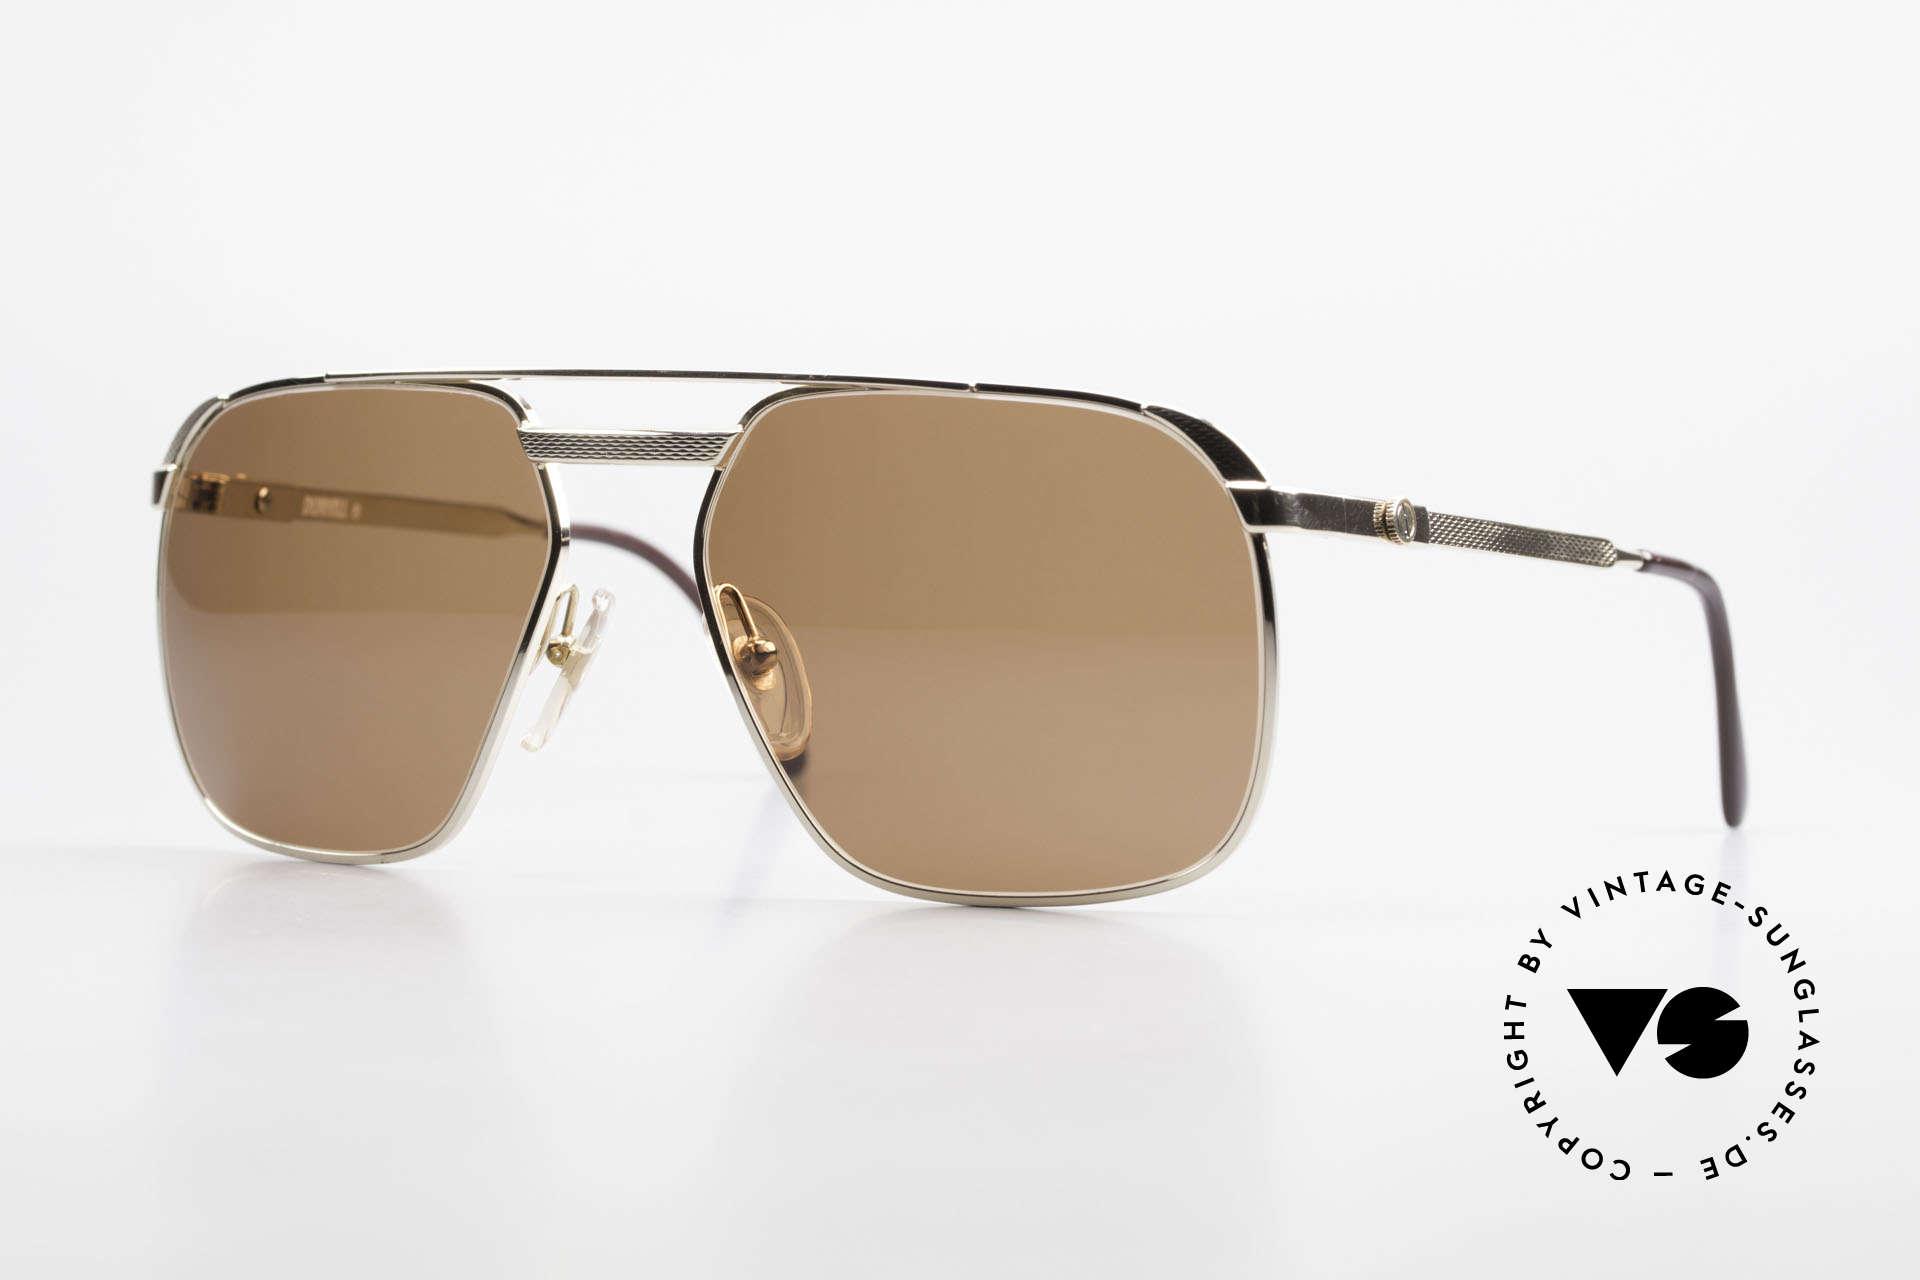 Dunhill 6011 Gold Plated Sunglasses 80's, masterpiece of style, quality, functionality and design, Made for Men